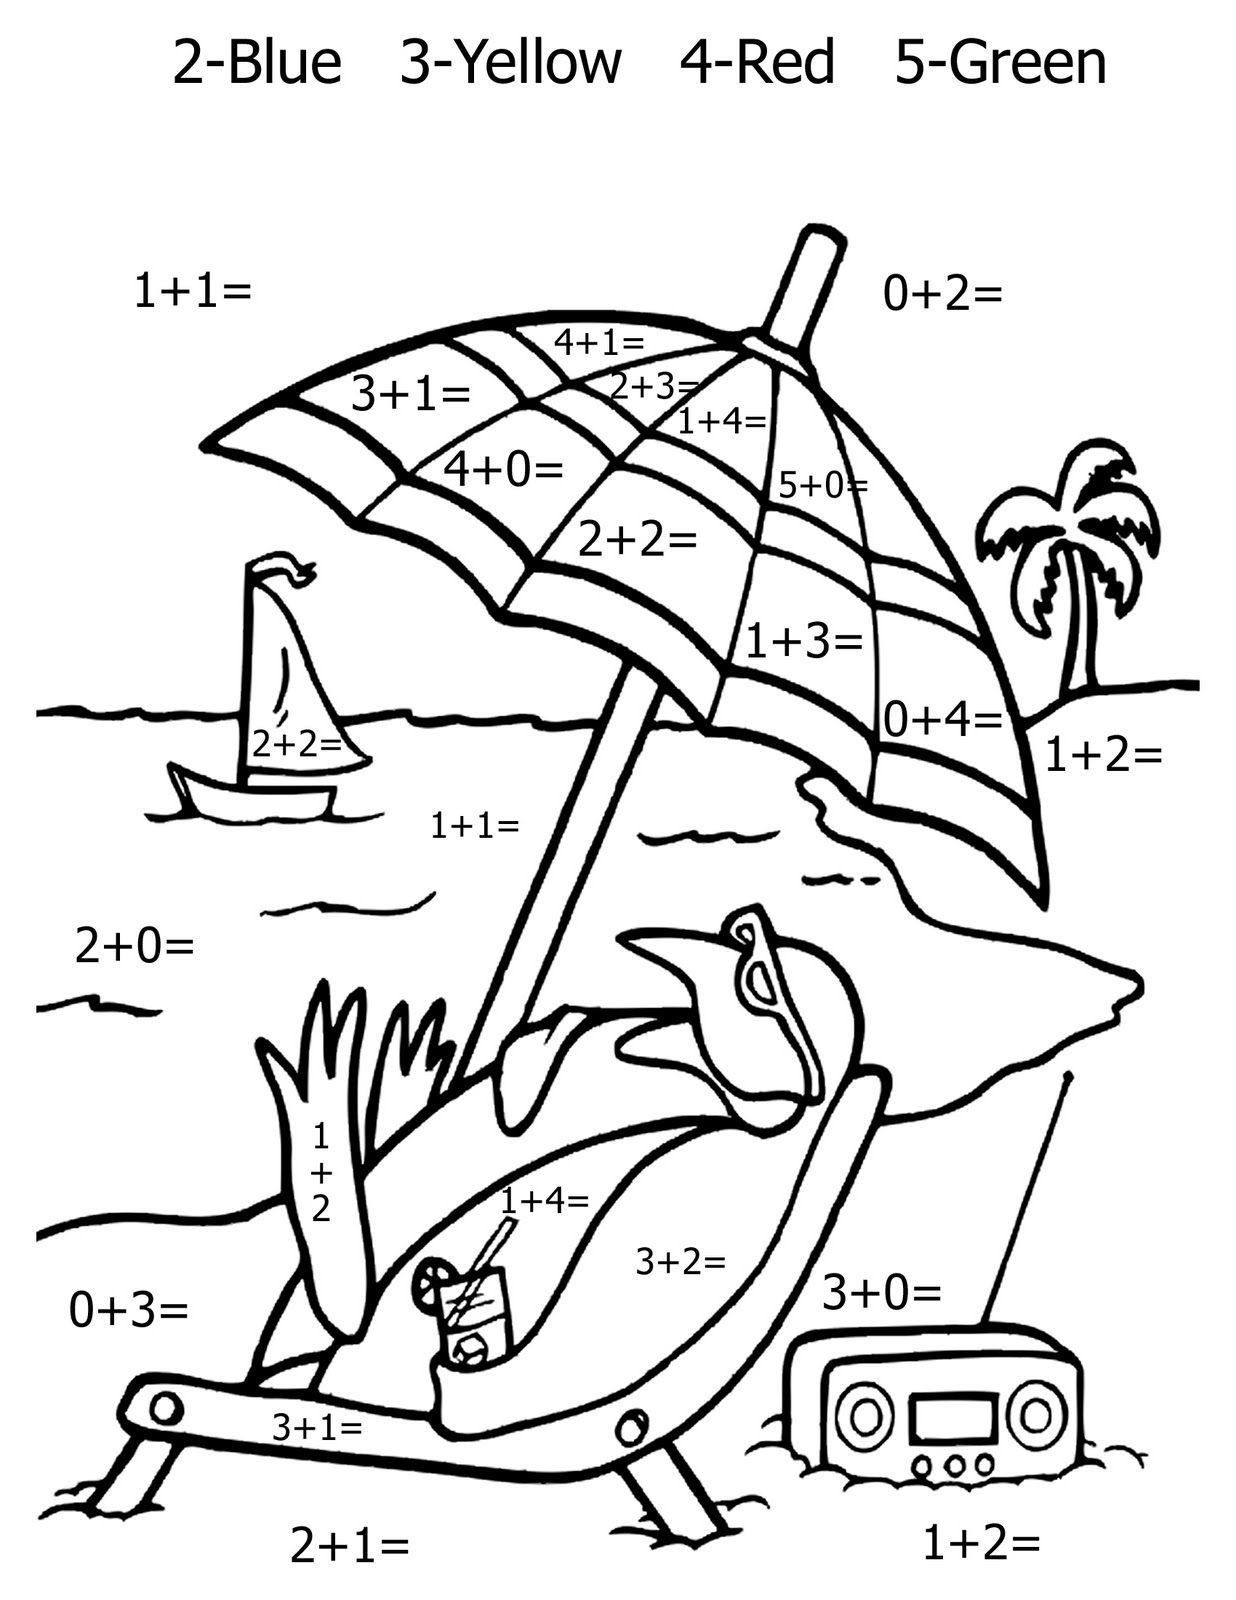 Free Worksheet First Grade Math Coloring Worksheets first grade math coloring pages 1000 images about kindergarten posted by tipical mommy at 10 38 am no comments